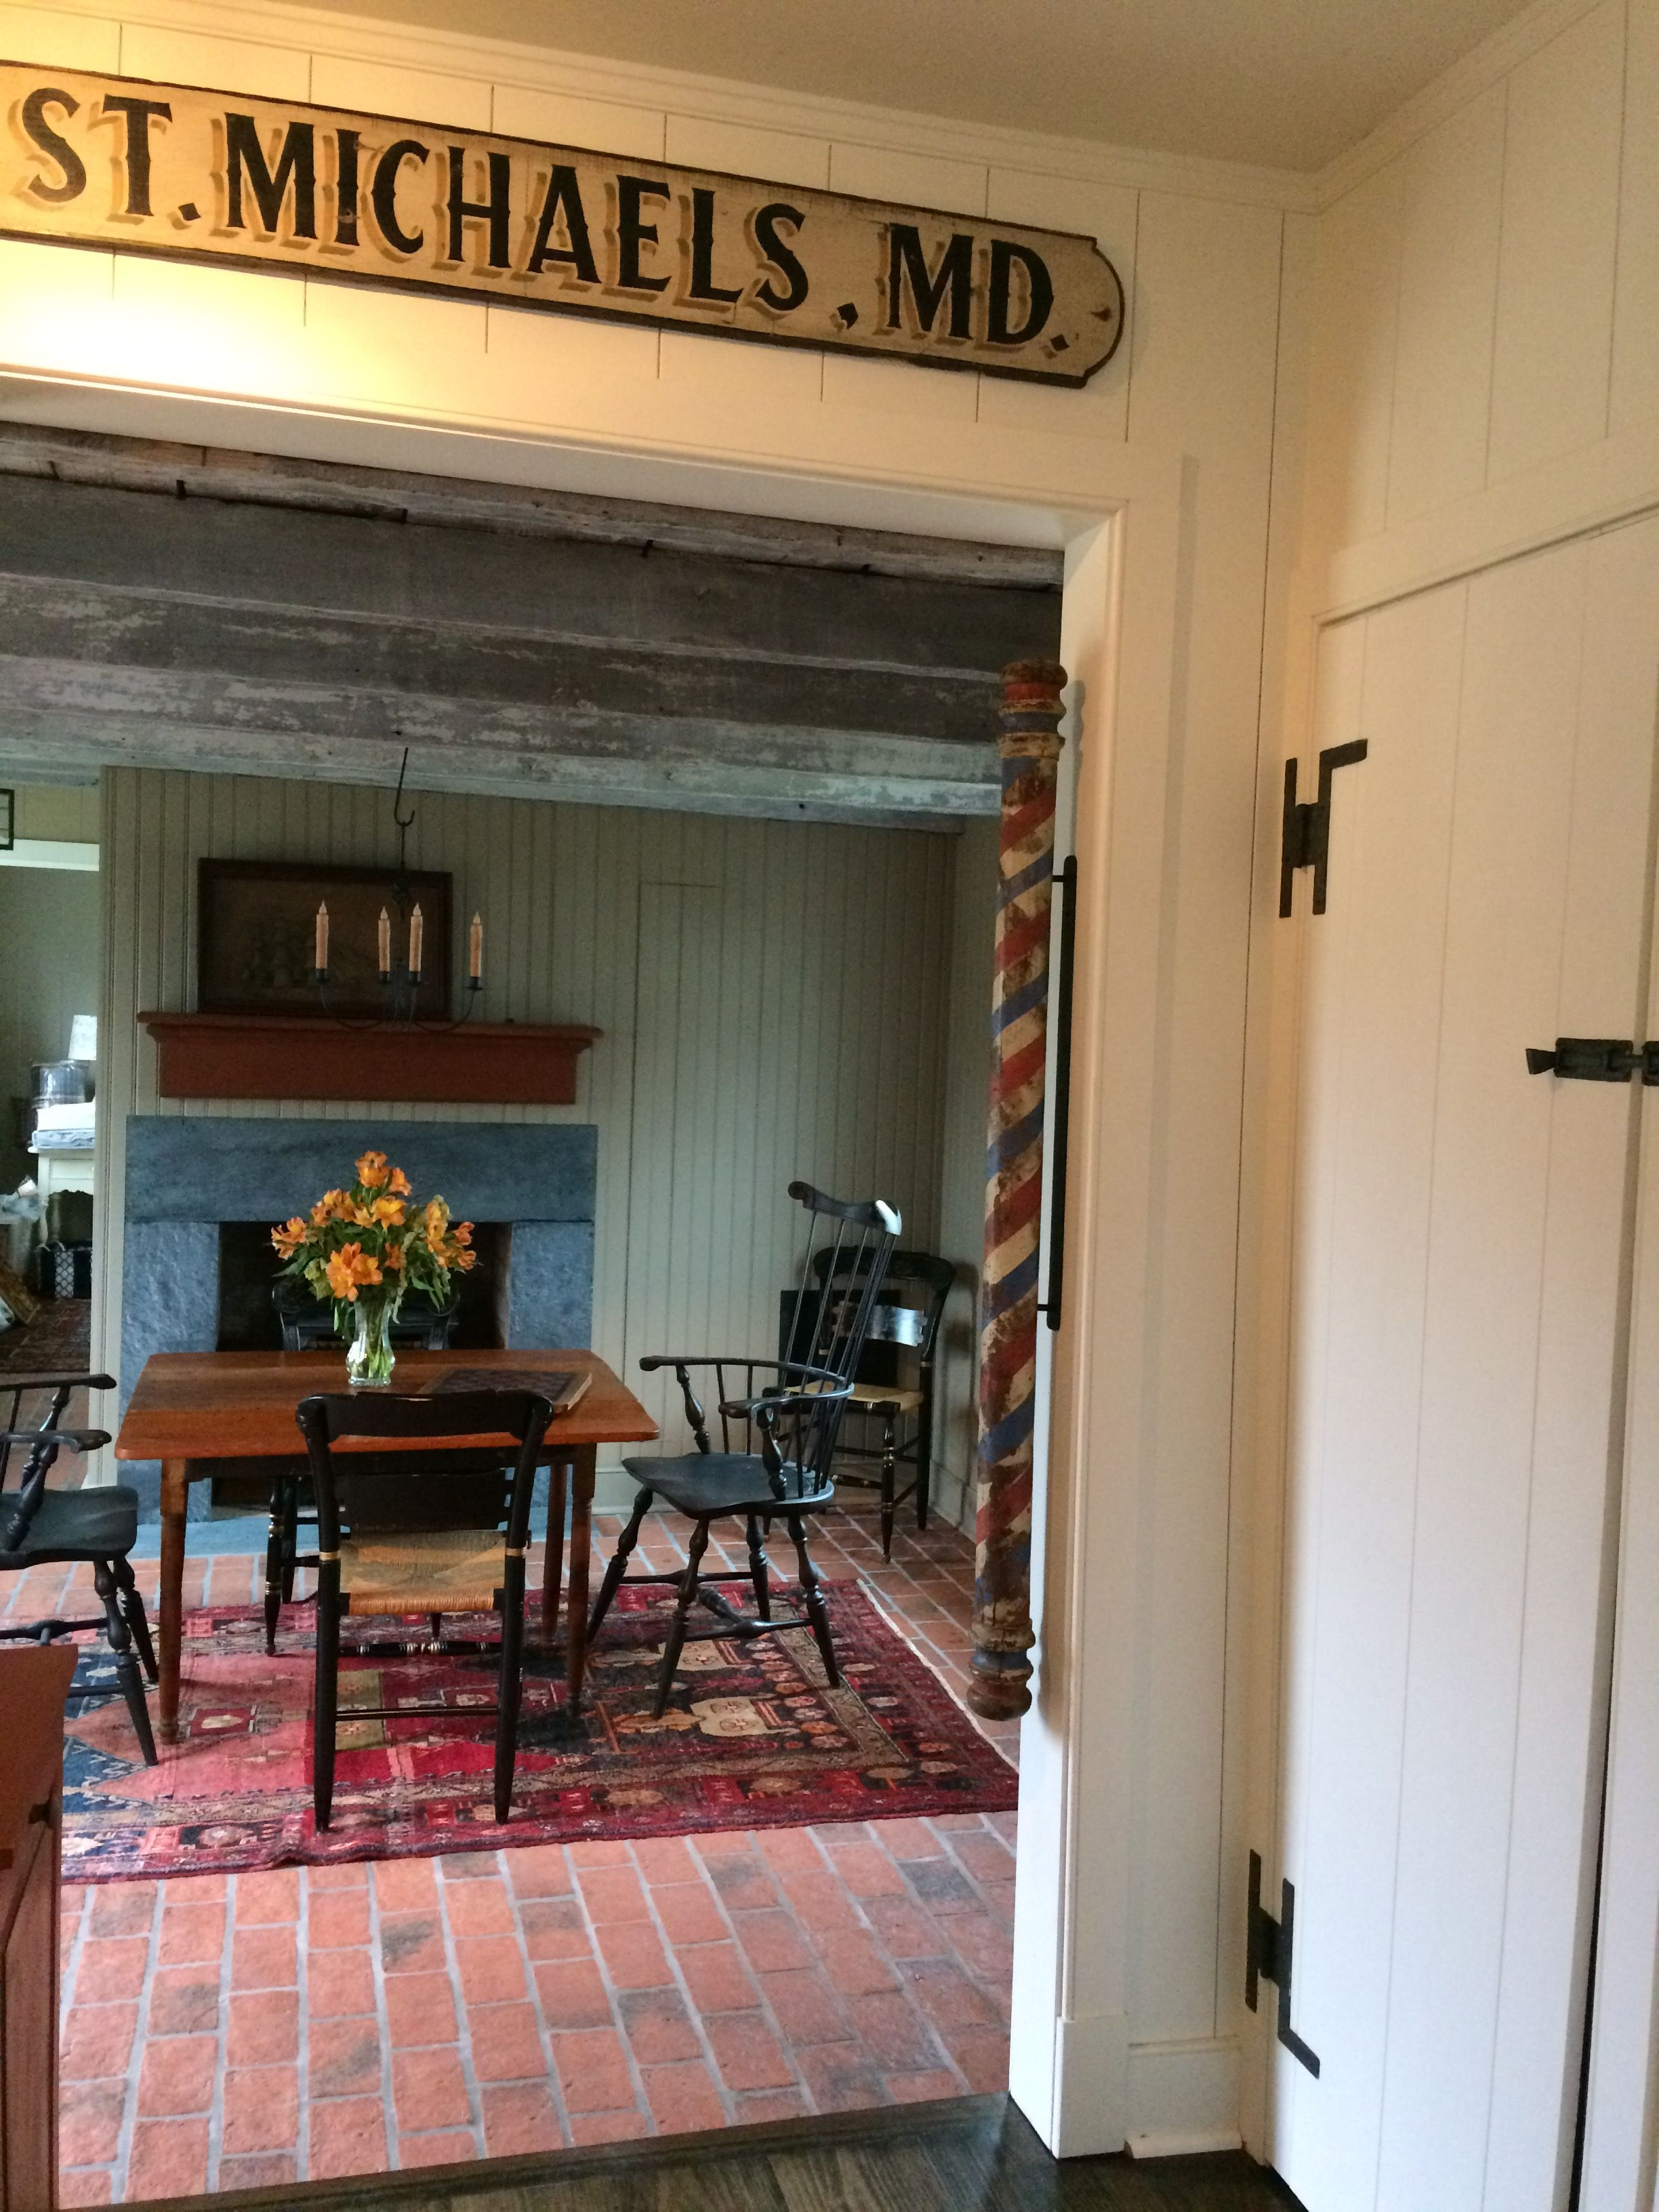 Pin on St. Michaels, MD Airbnb, Carpenter Street | Home ...